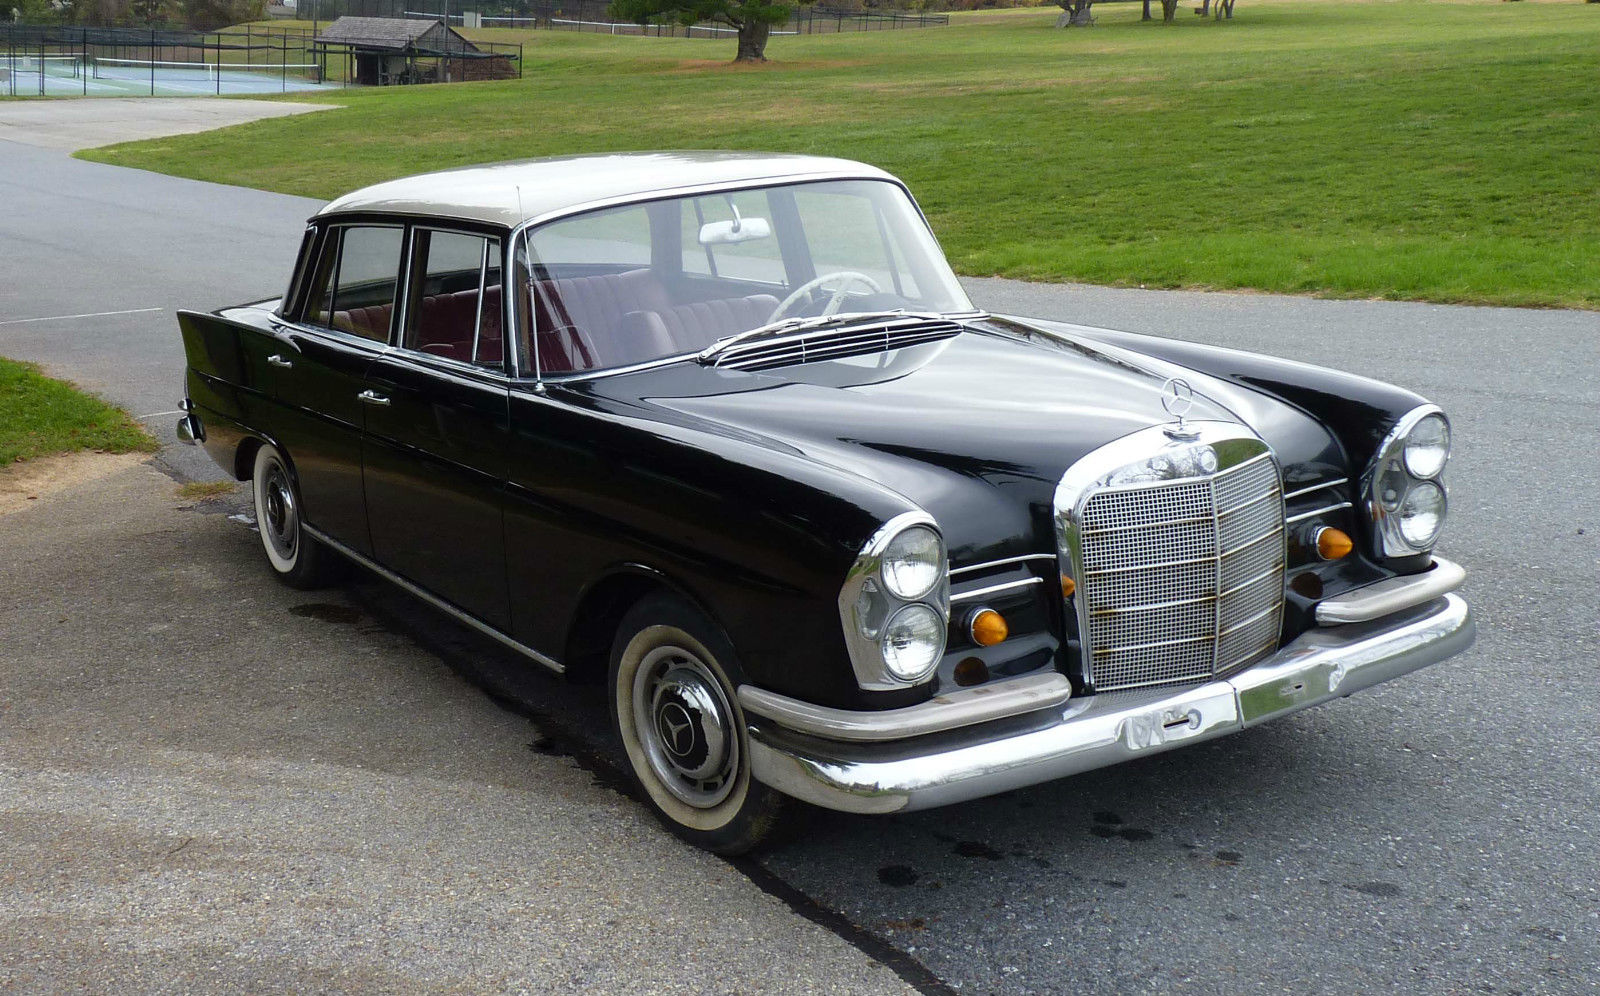 Daily turismo black friday 1964 mercedes benz 220 se w111 for 1964 mercedes benz